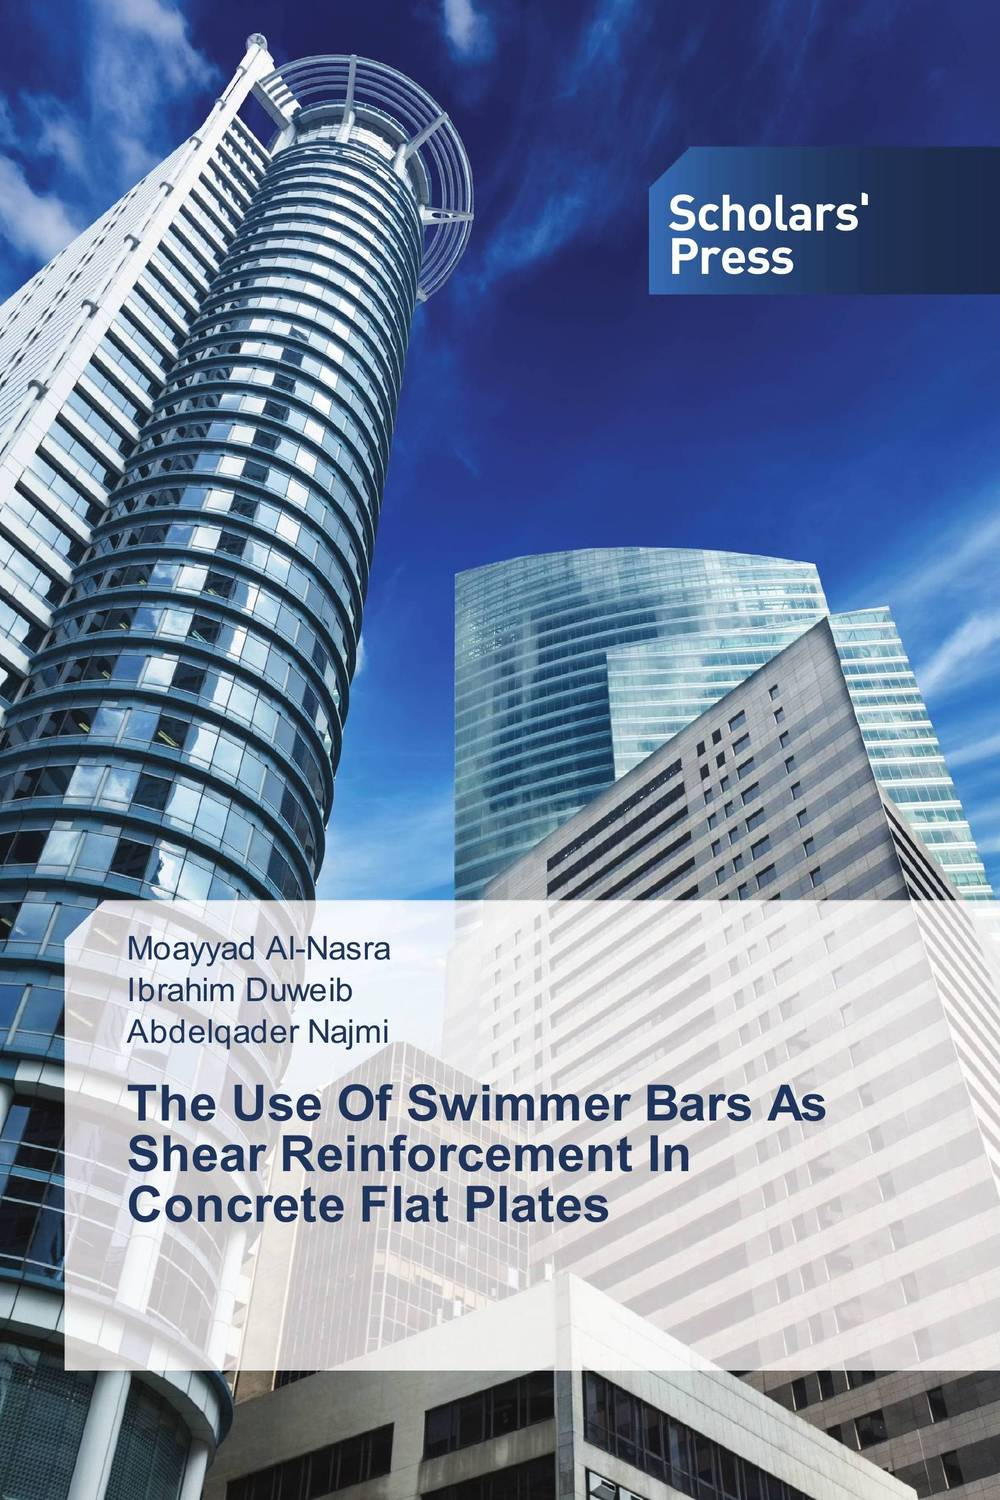 The Use Of Swimmer Bars As Shear Reinforcement In Concrete Flat Plates